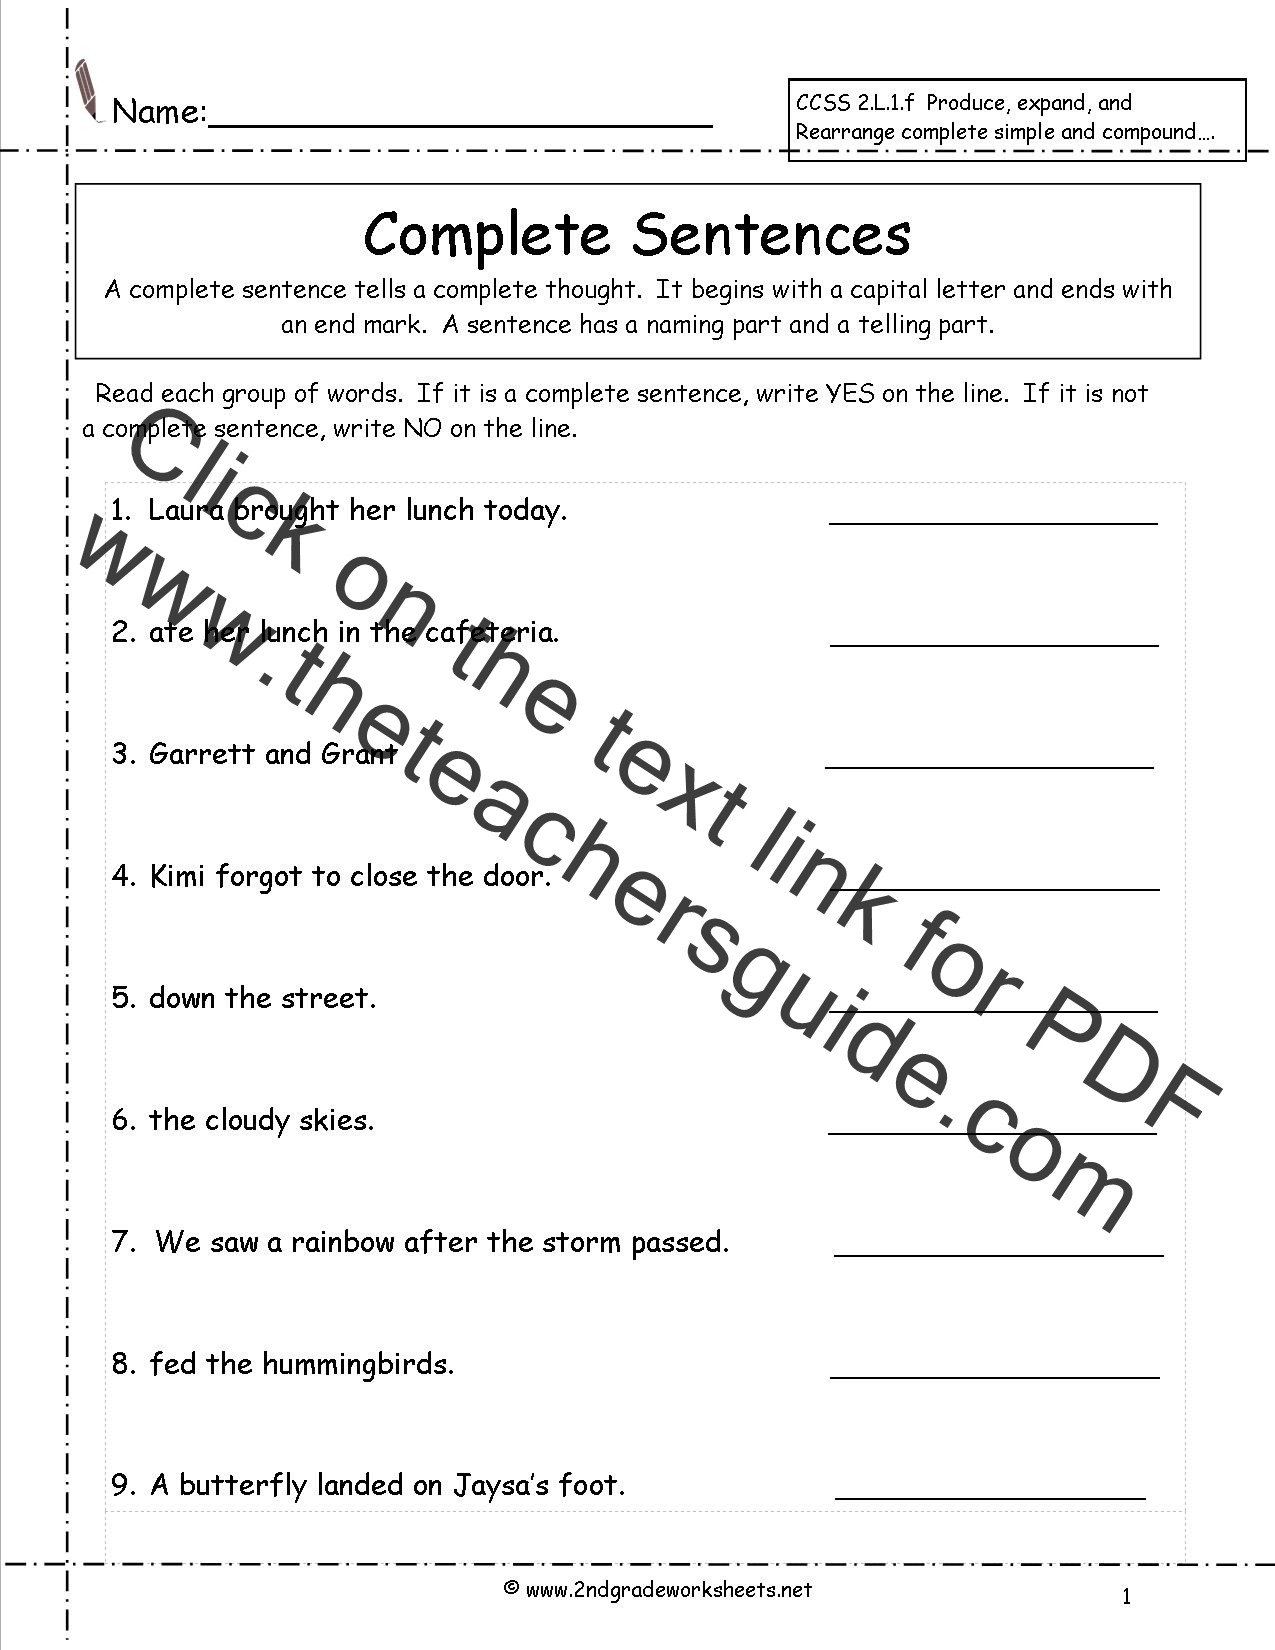 Making Compound Sentences Worksheets Second Grade Sentences Worksheets Ccss 2 L 1 F Worksheets